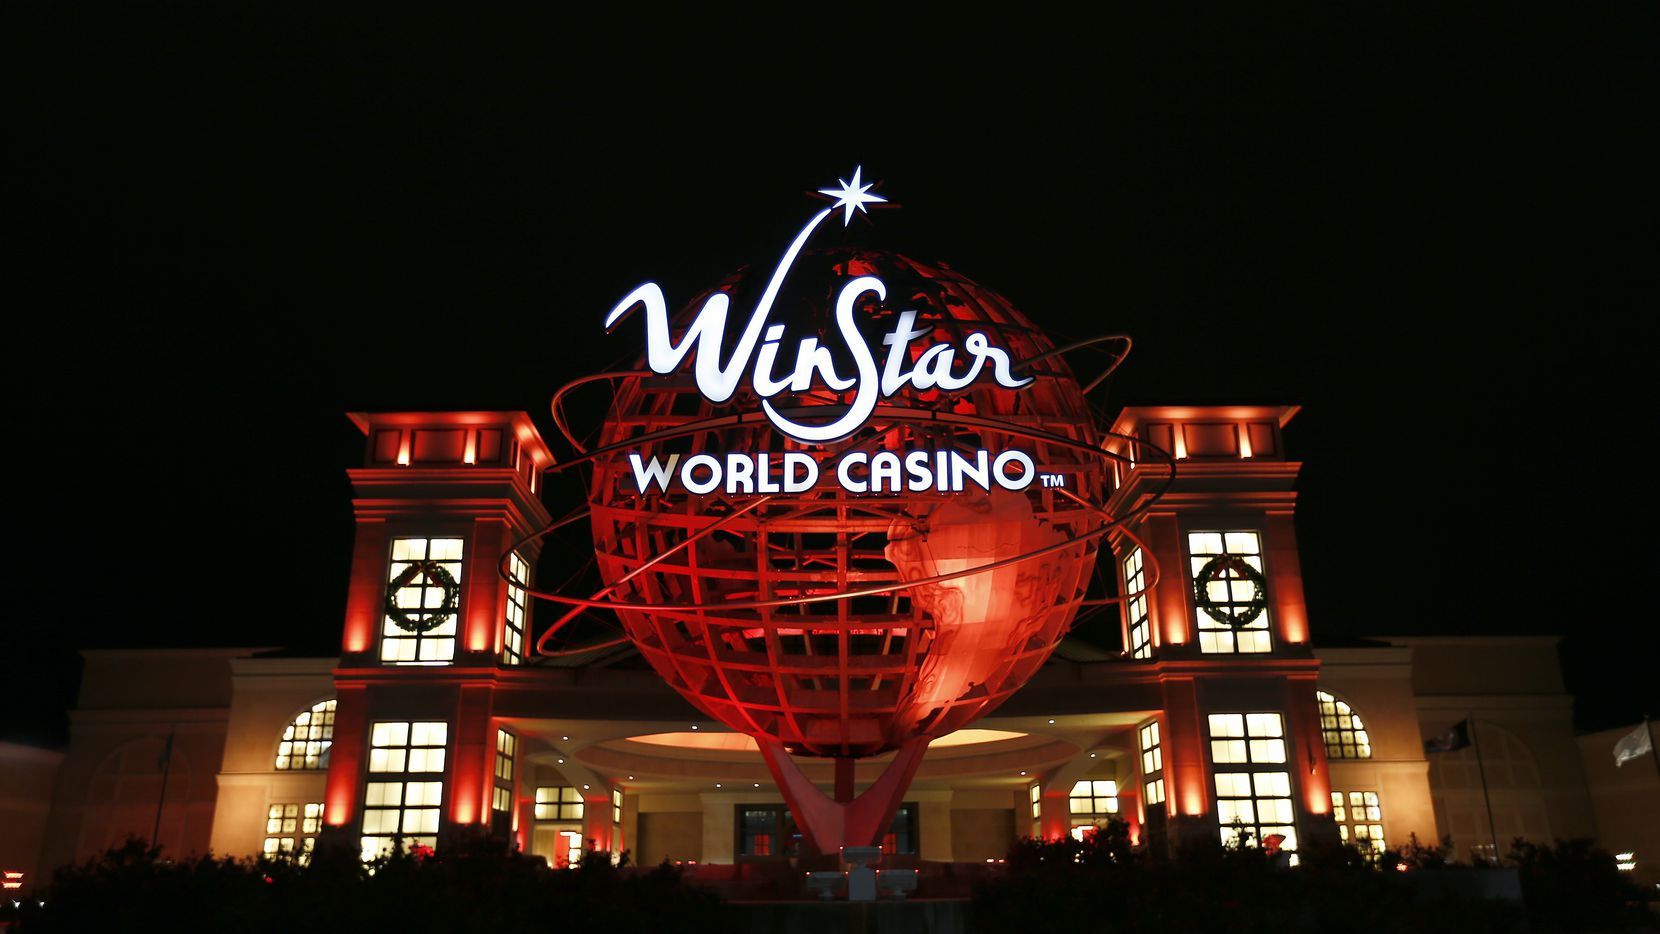 Winstar world casino oklahoma map